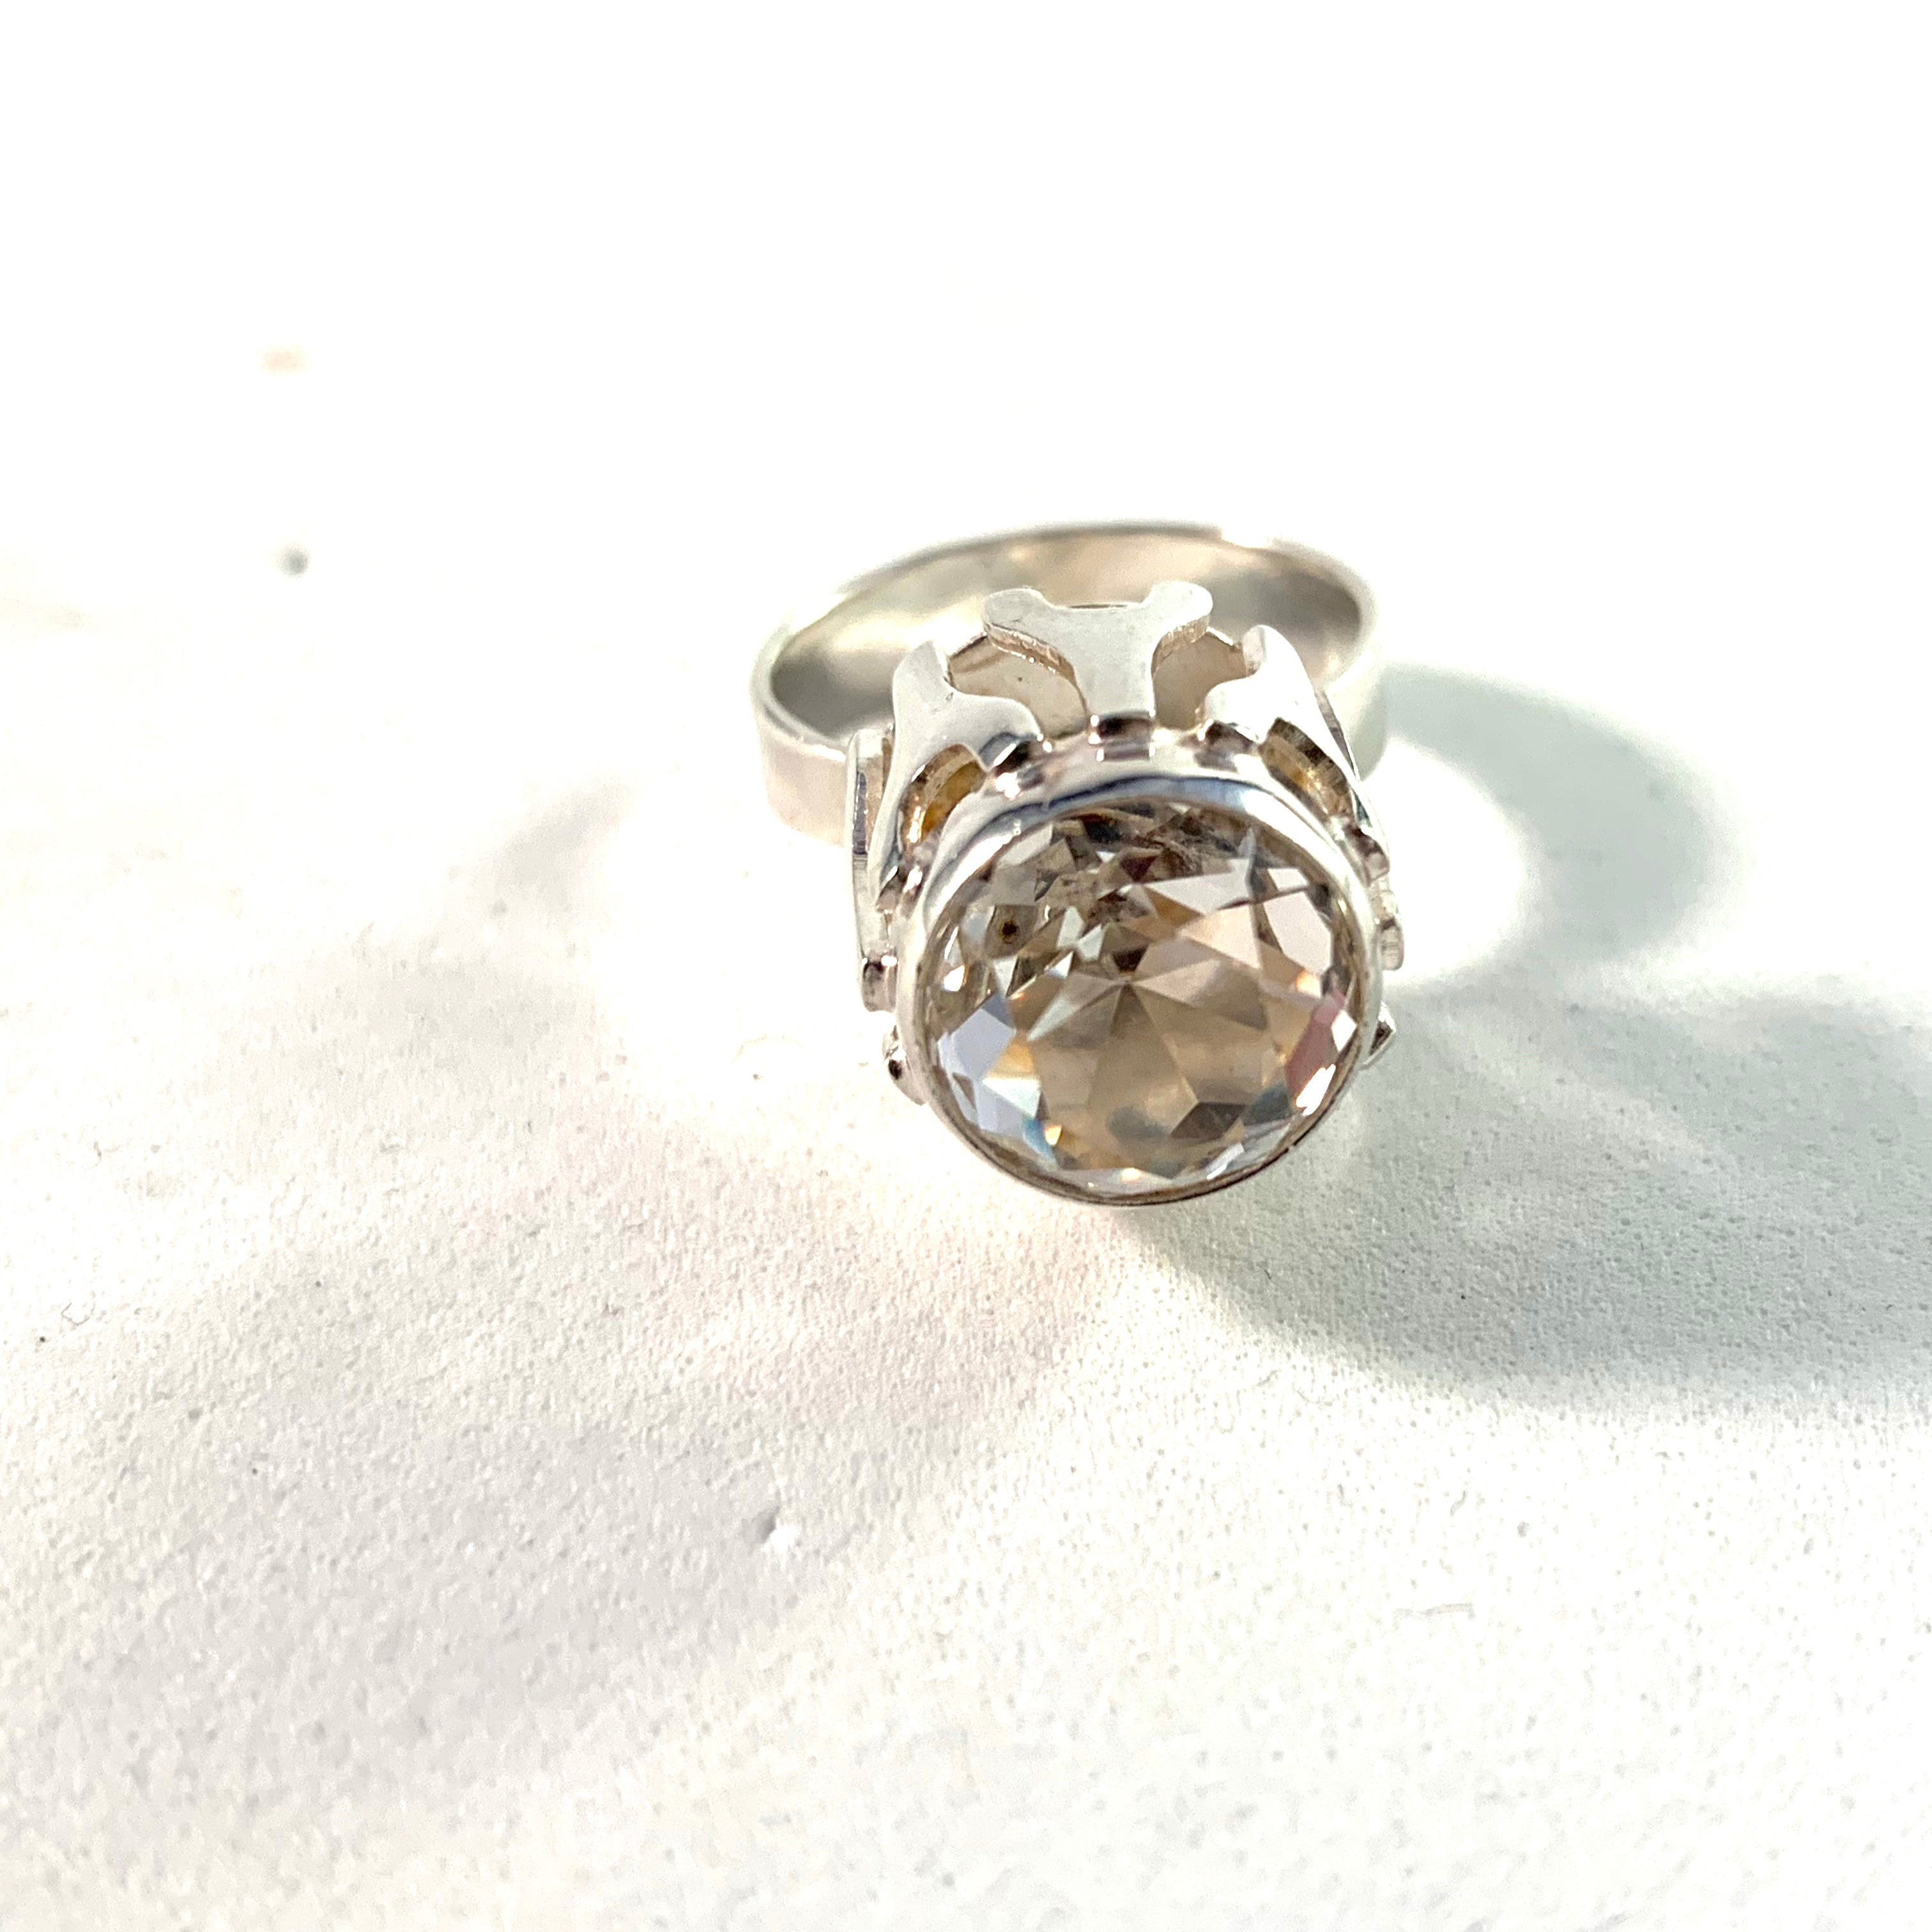 Germany 1960s Modernist 835 Silver Rock Crystal Ring.